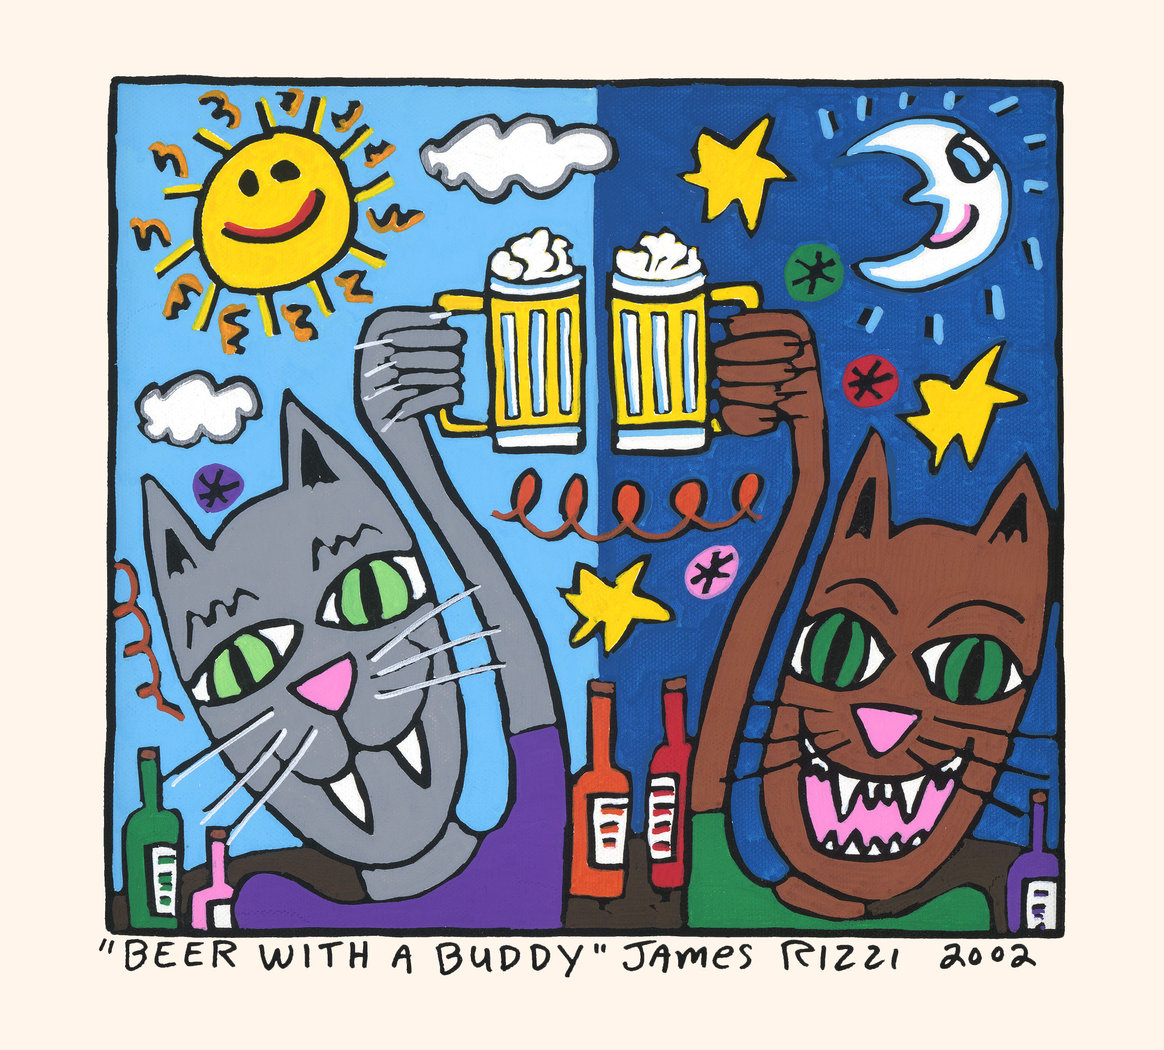 James Rizzi - BEER WITH A BUDDY